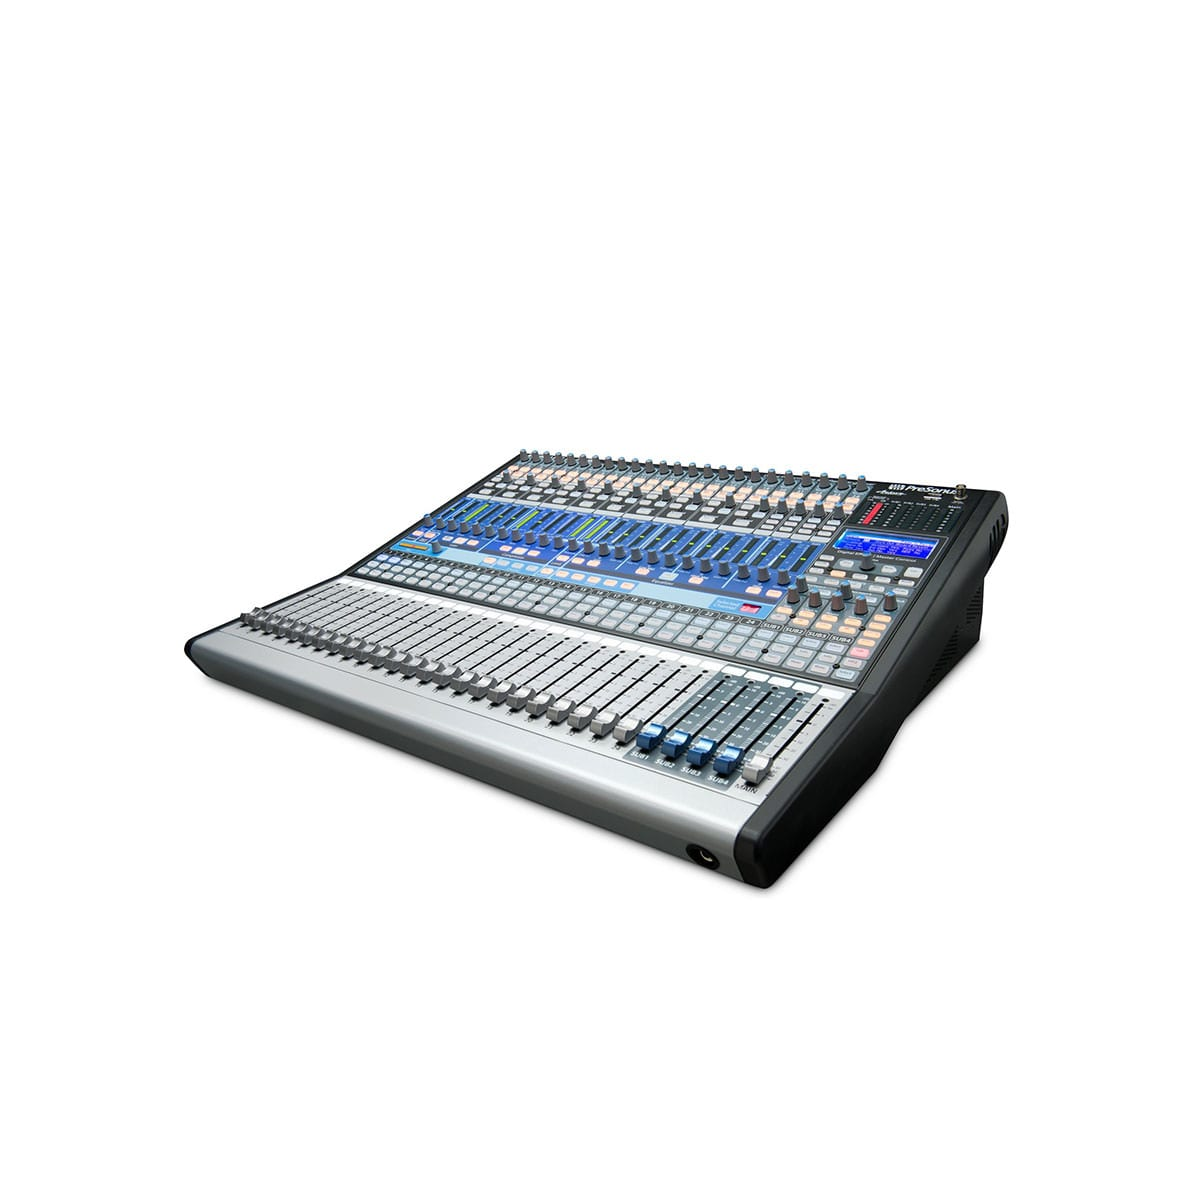 StudioLive 24.4.2AI 24 Channel Digital Mixer